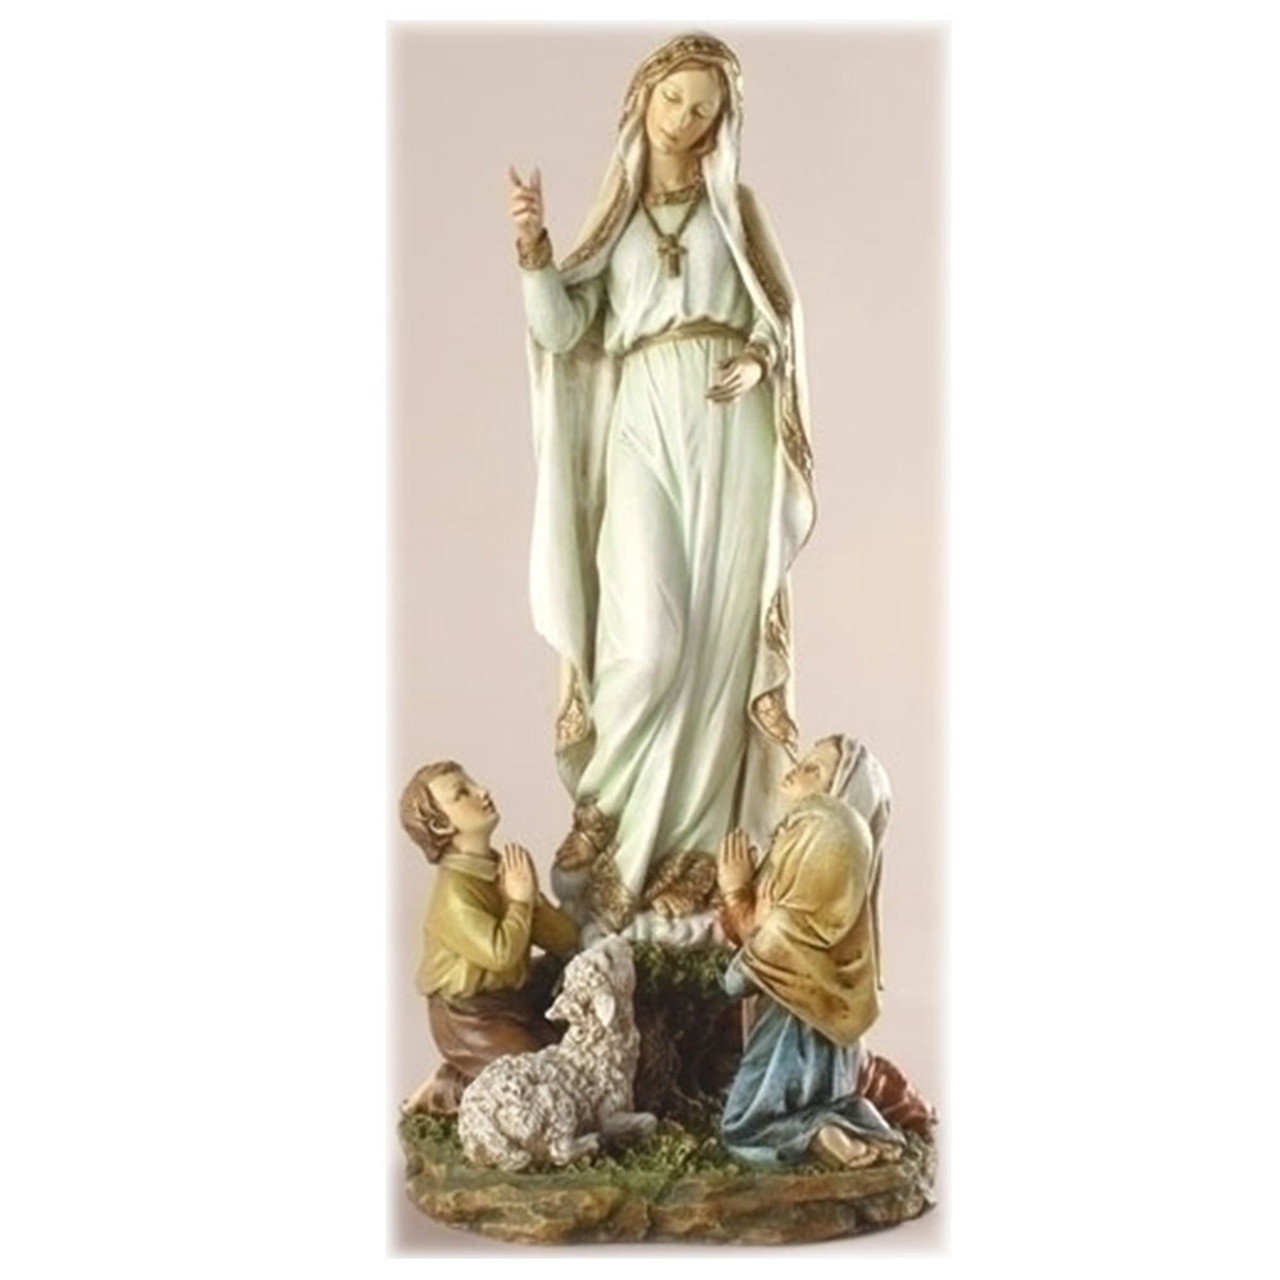 Our lady of Fatima 12 Inch Statue